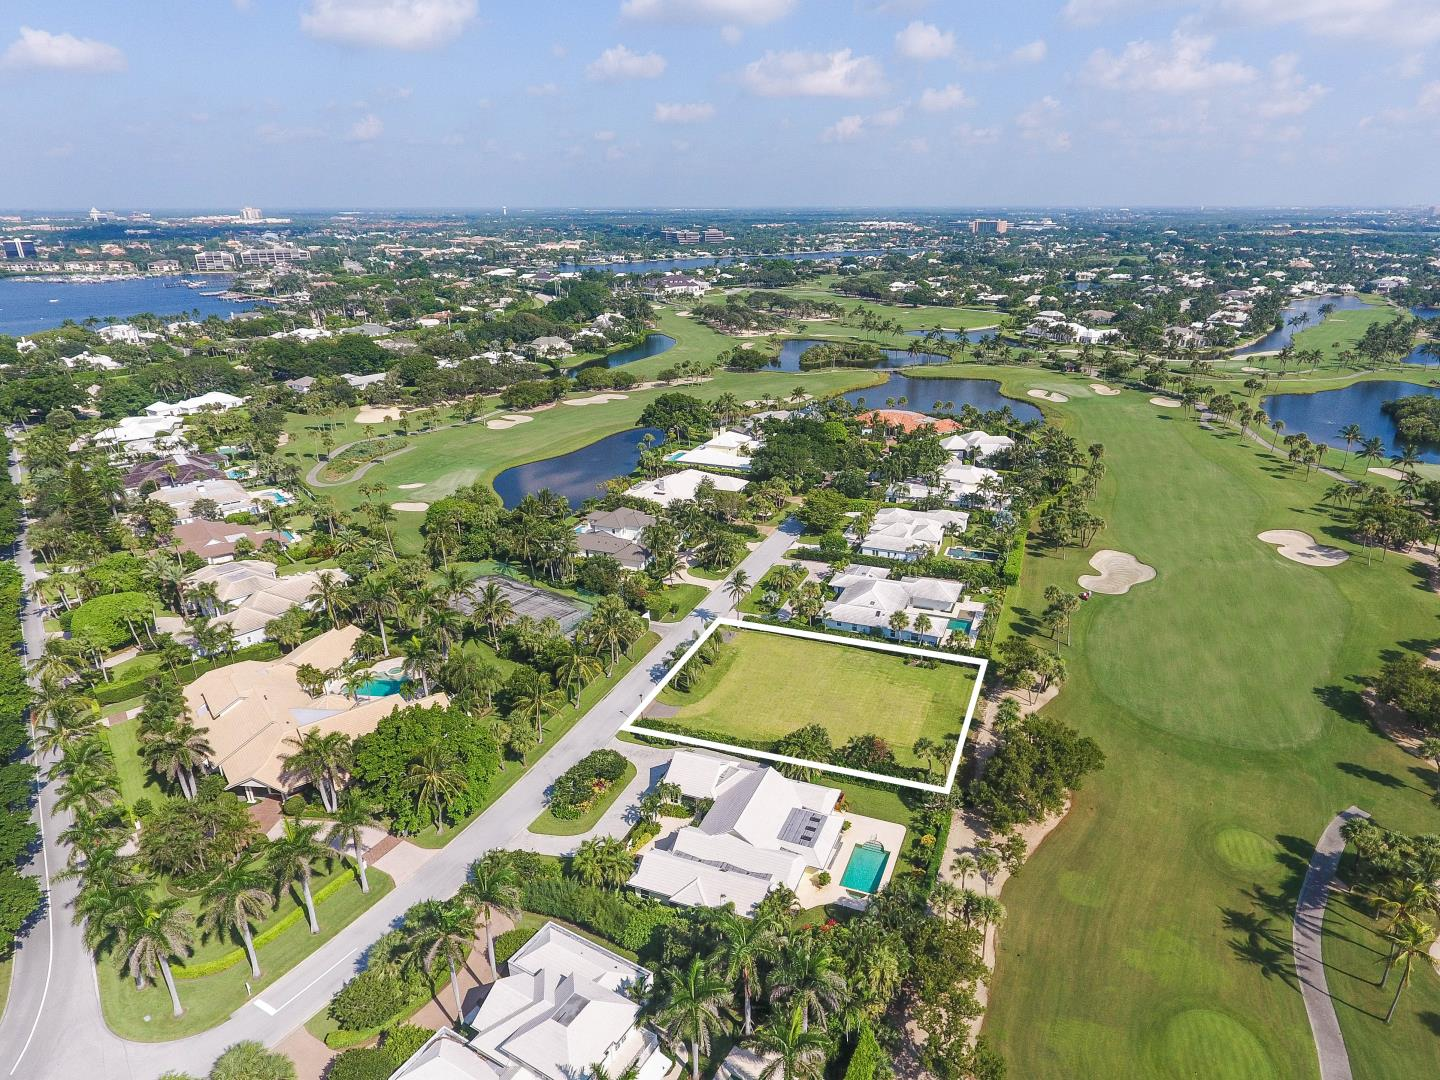 11330GolfViewRoadAerial_18_marked.jpg